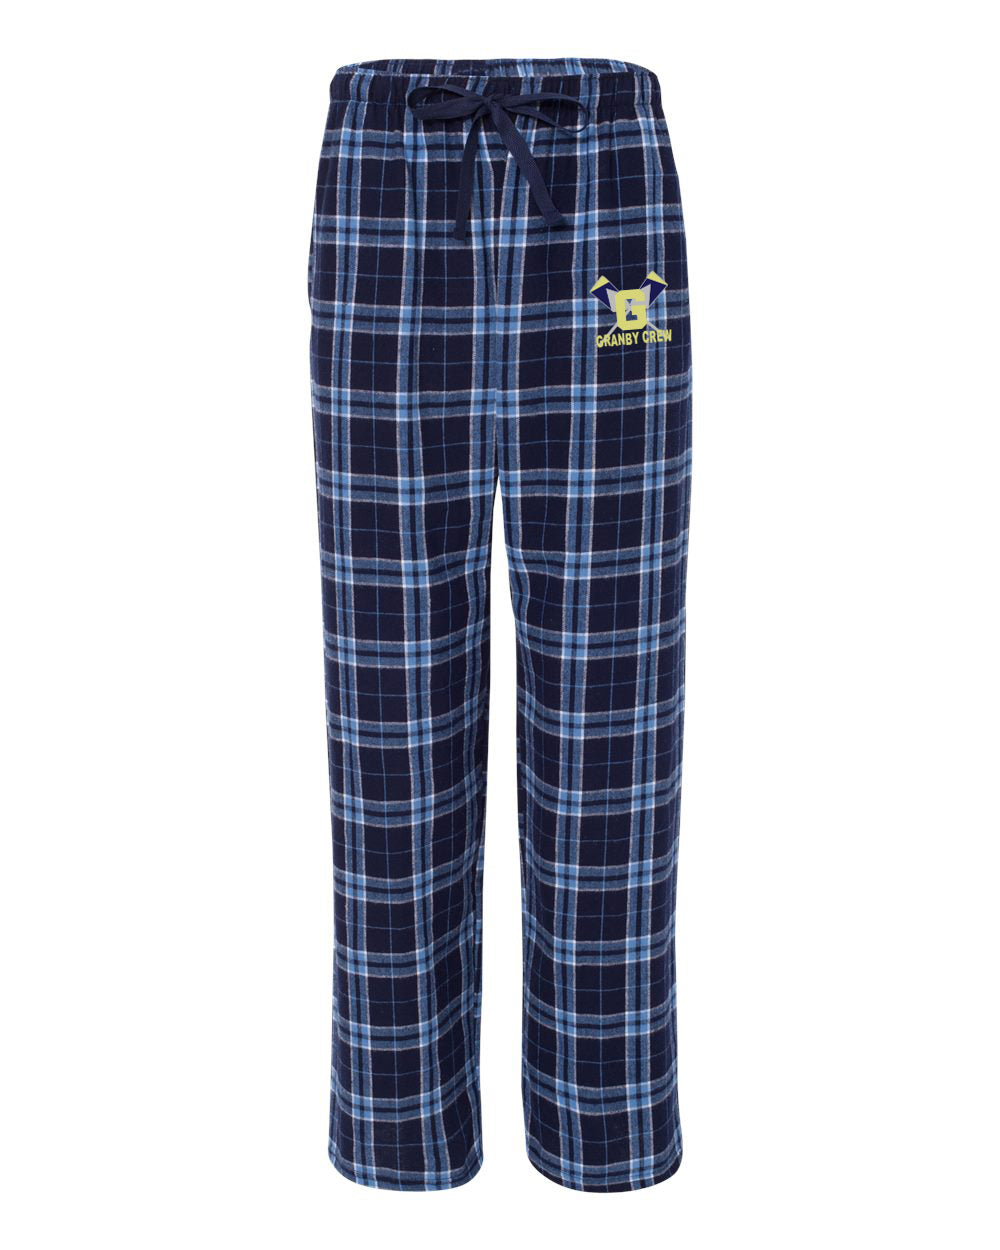 Granby Crew Flannel Pants